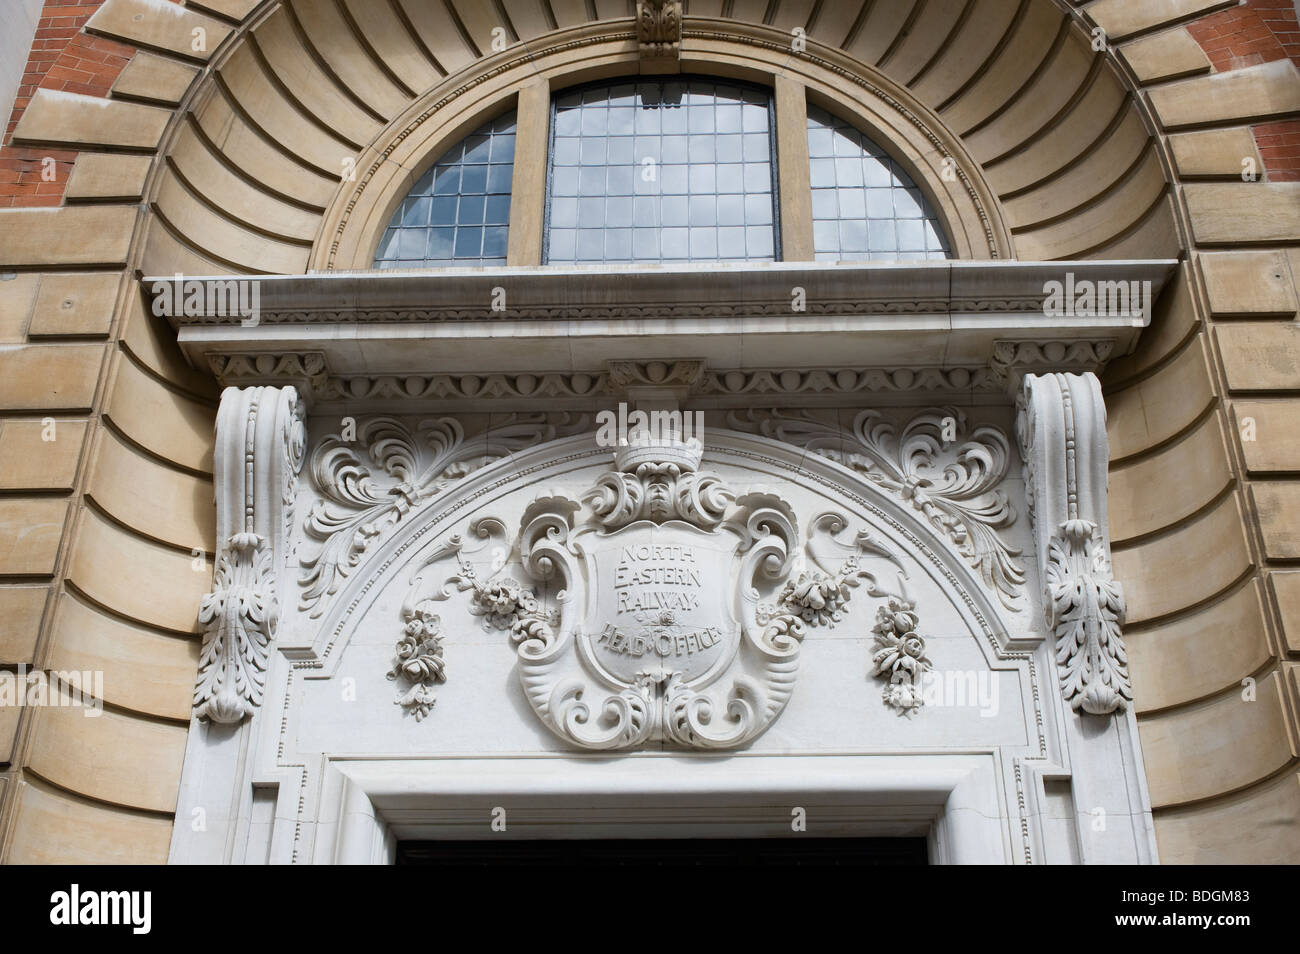 Entrance to the old North Eastern Railway head office in the city of York, England - Stock Image